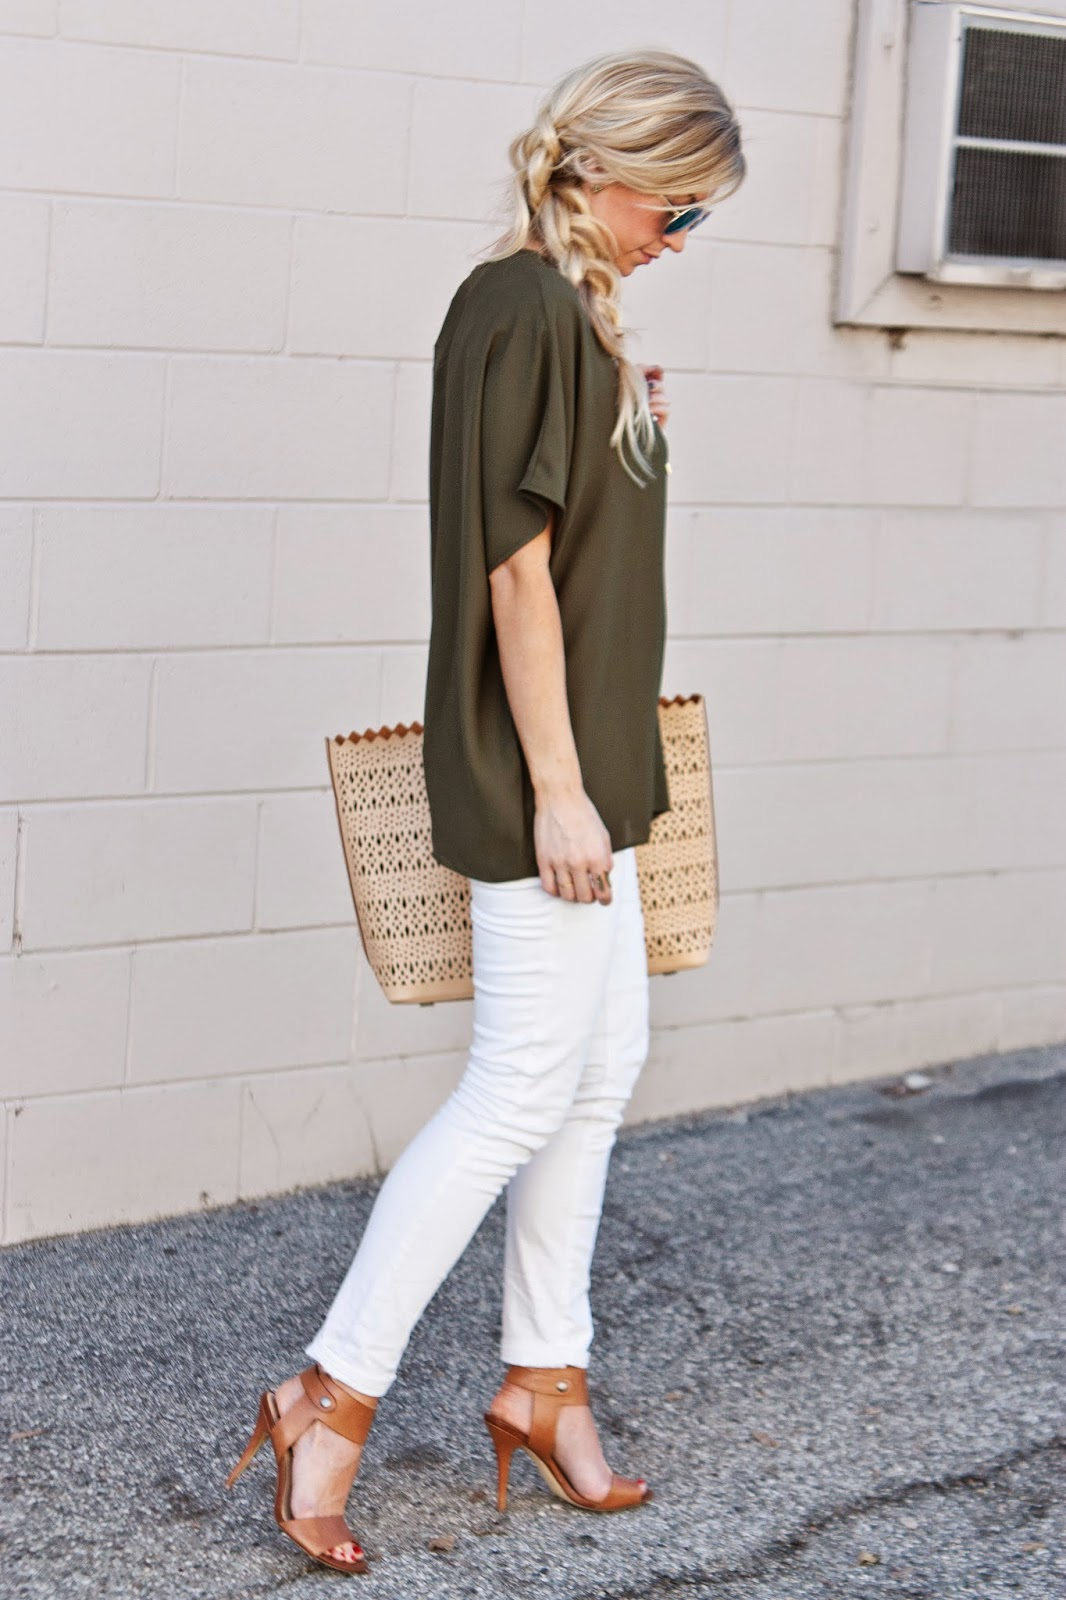 Street style tip of the day: Spring fling